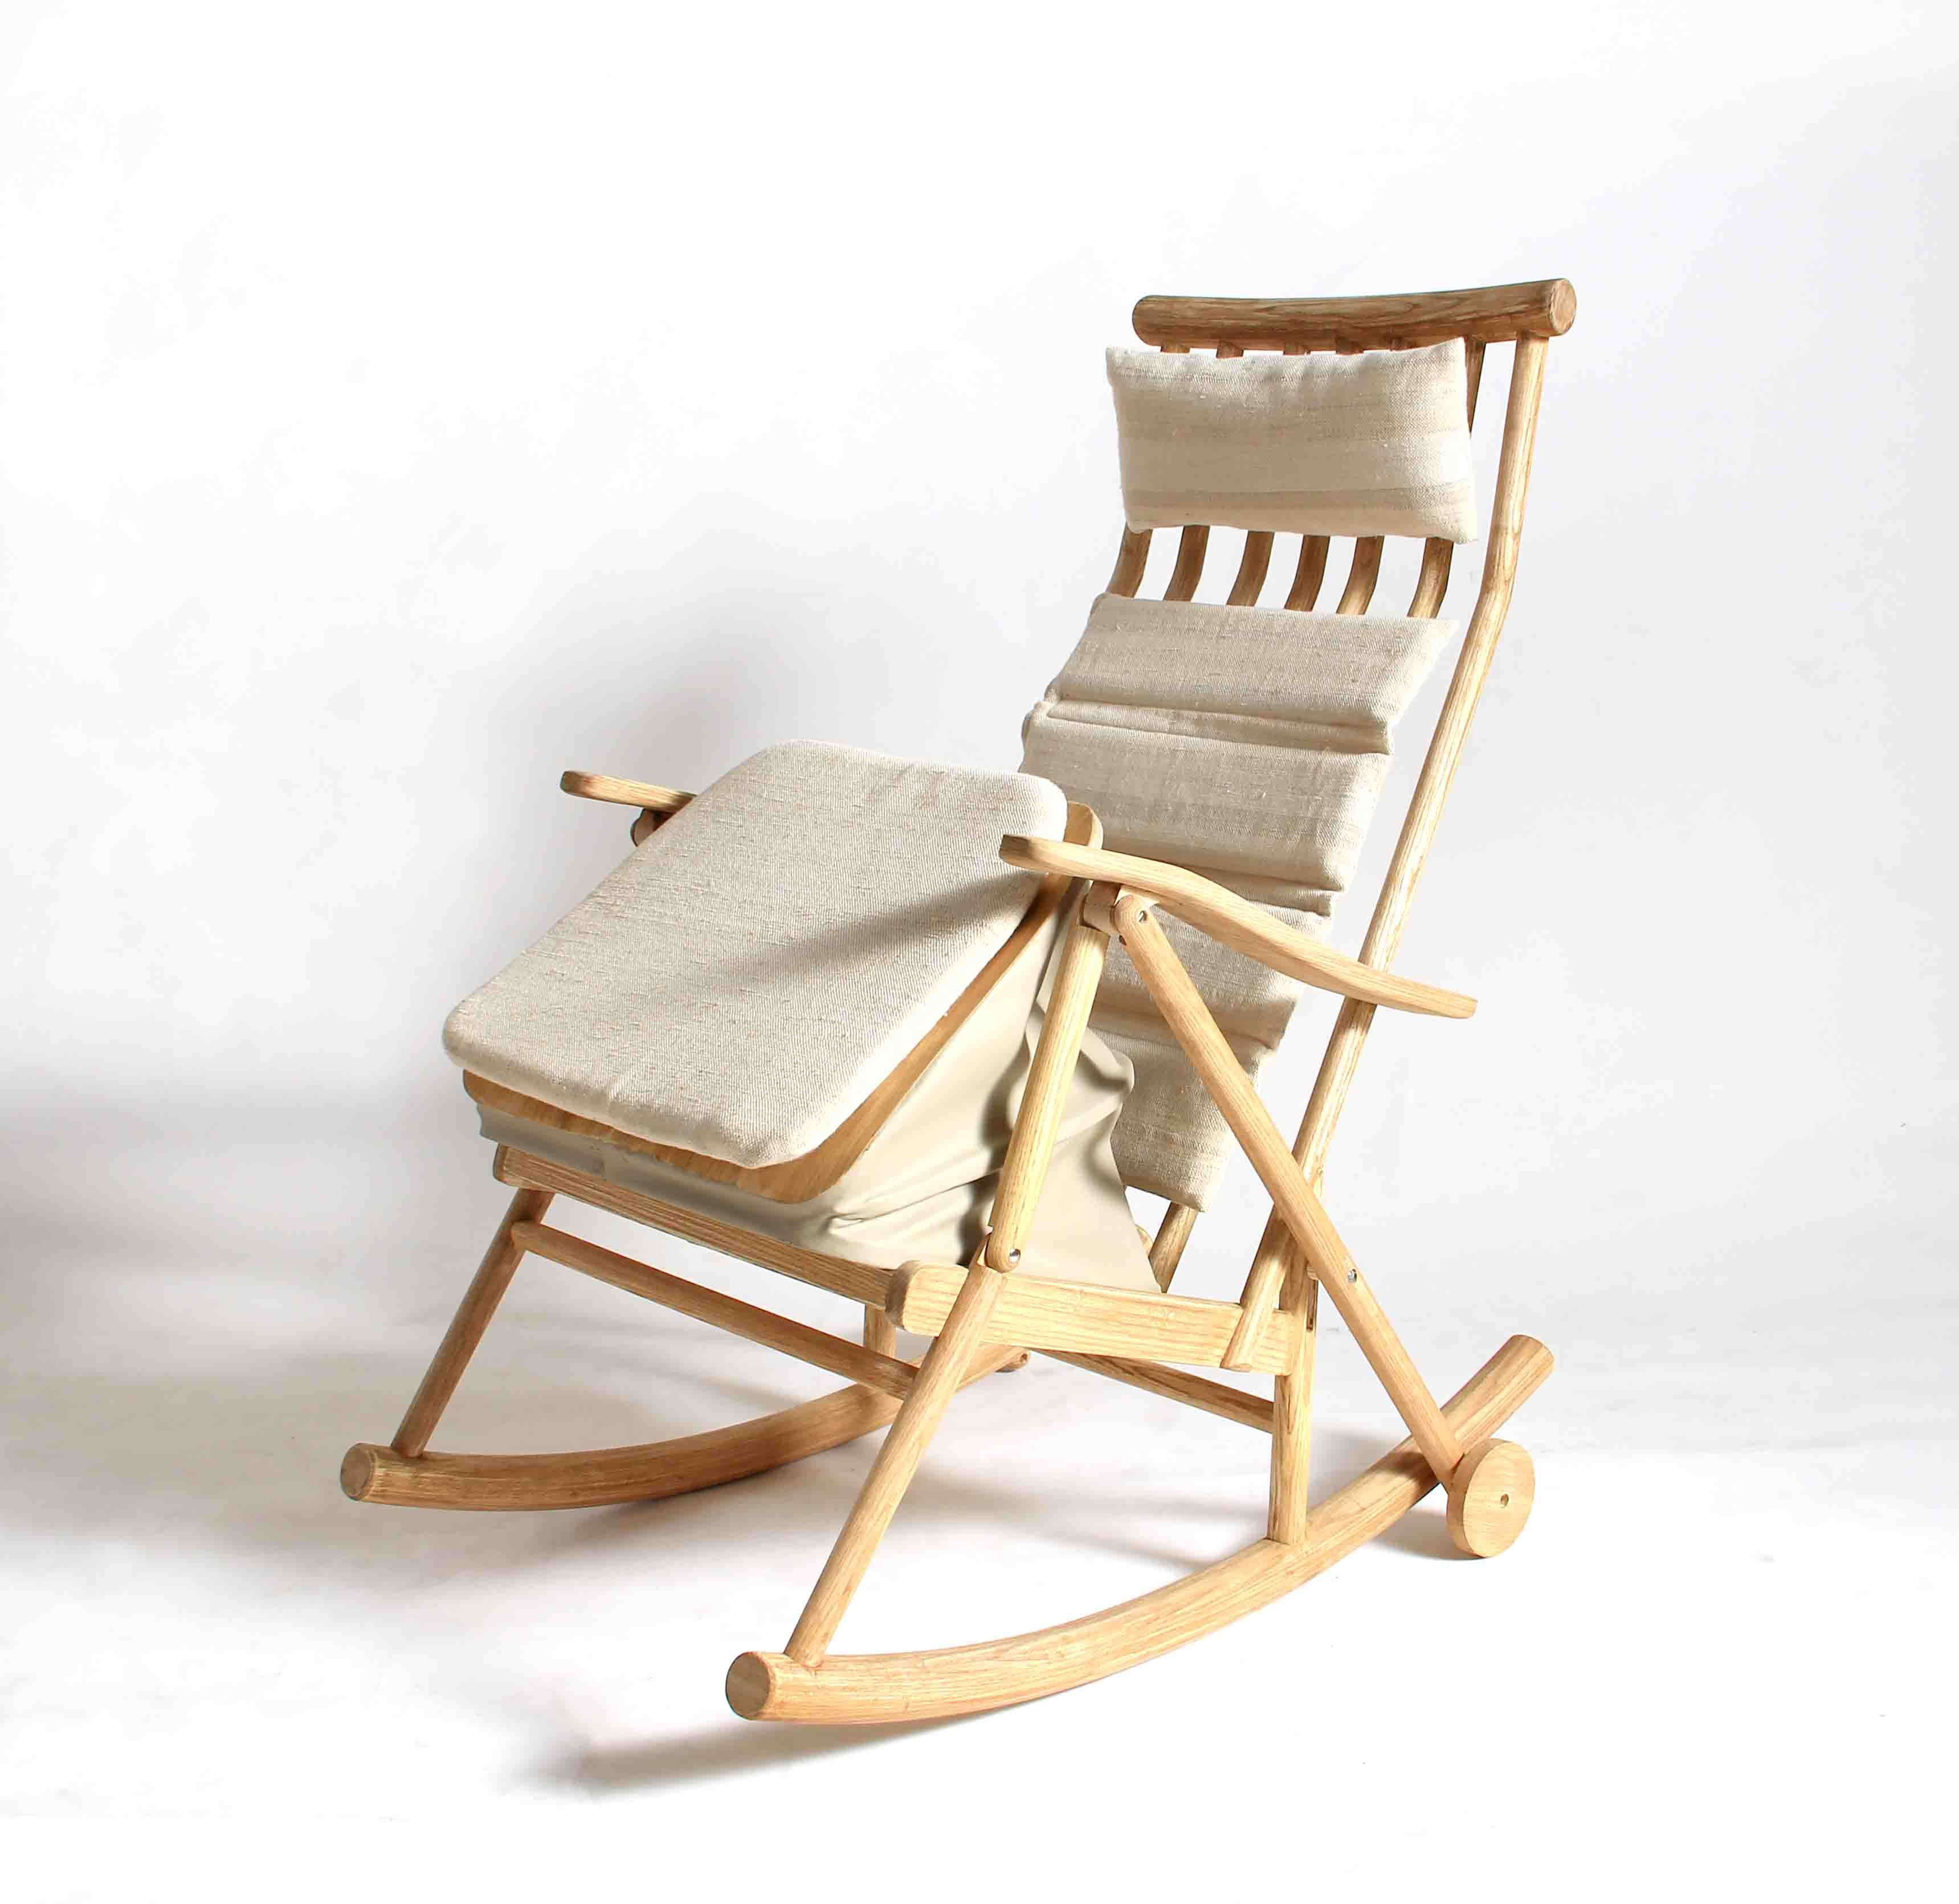 Relaxing Chair Design: Design Of Relaxing Chair For Eldery By Niti Plookvongpanit